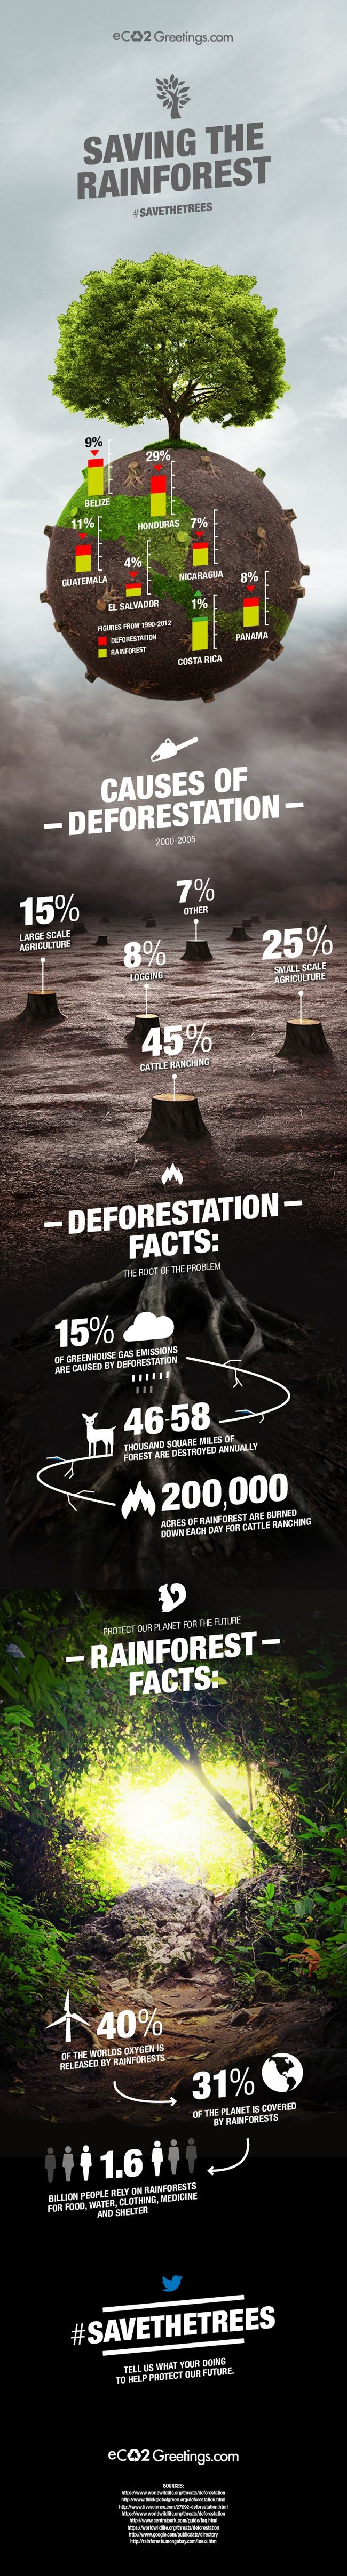 The Alarming Truth Behind Deforestation - Save the Trees Infographic #nature #conservation